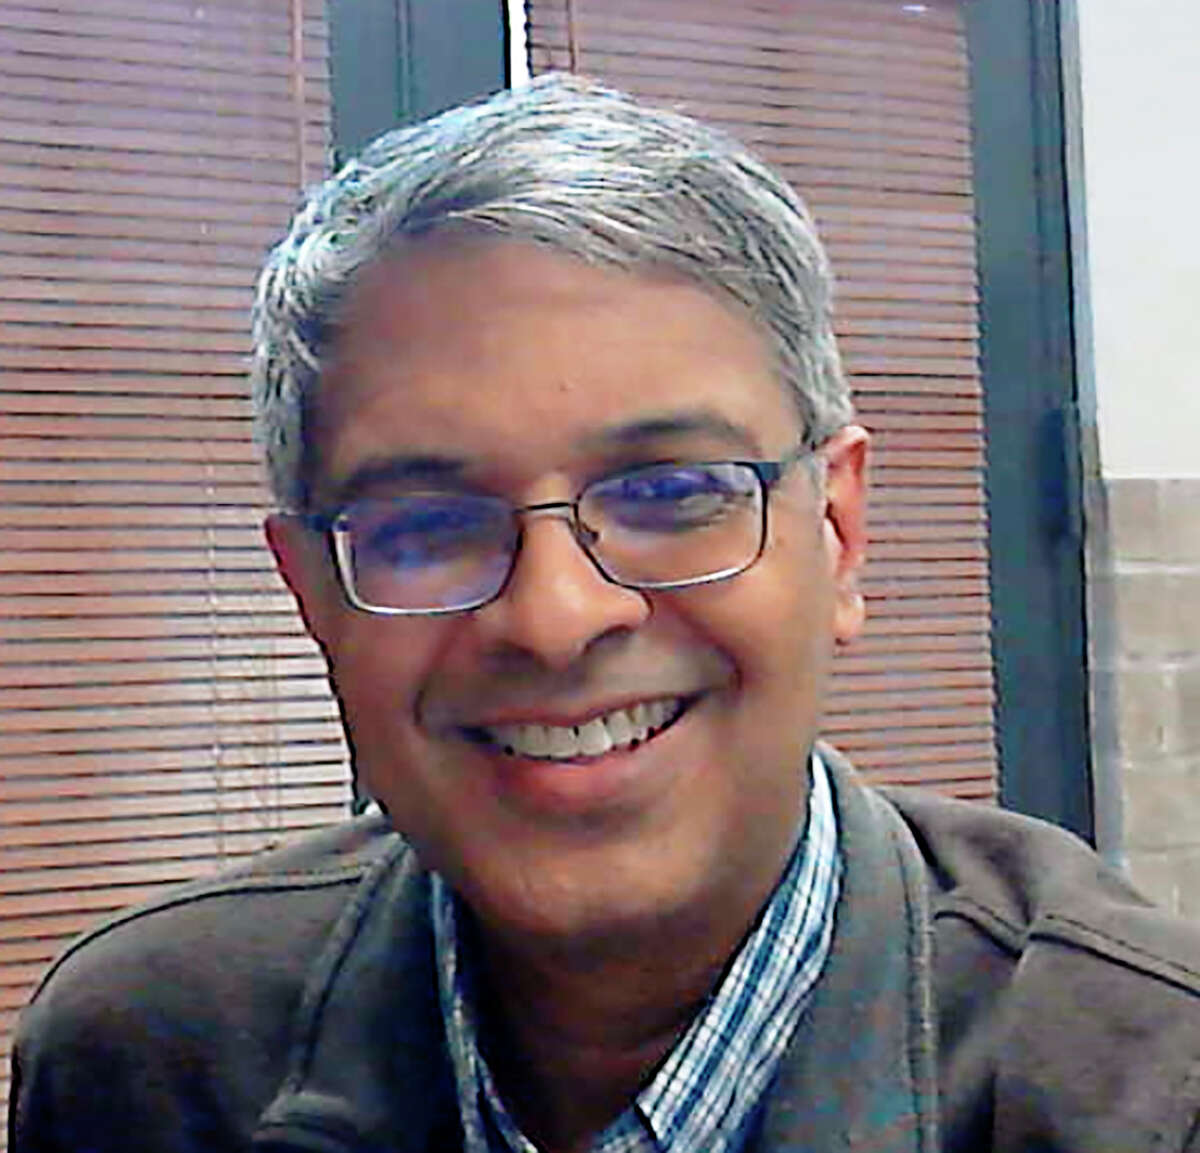 Dr. Jay Bhattacharya, professor of medicine at Stanford University, is one of the authors of the Great Barrington Declaration, a document released on Oct. 5, 2020, that advocates eliminating lockdowns as a strategy against COVID-19.